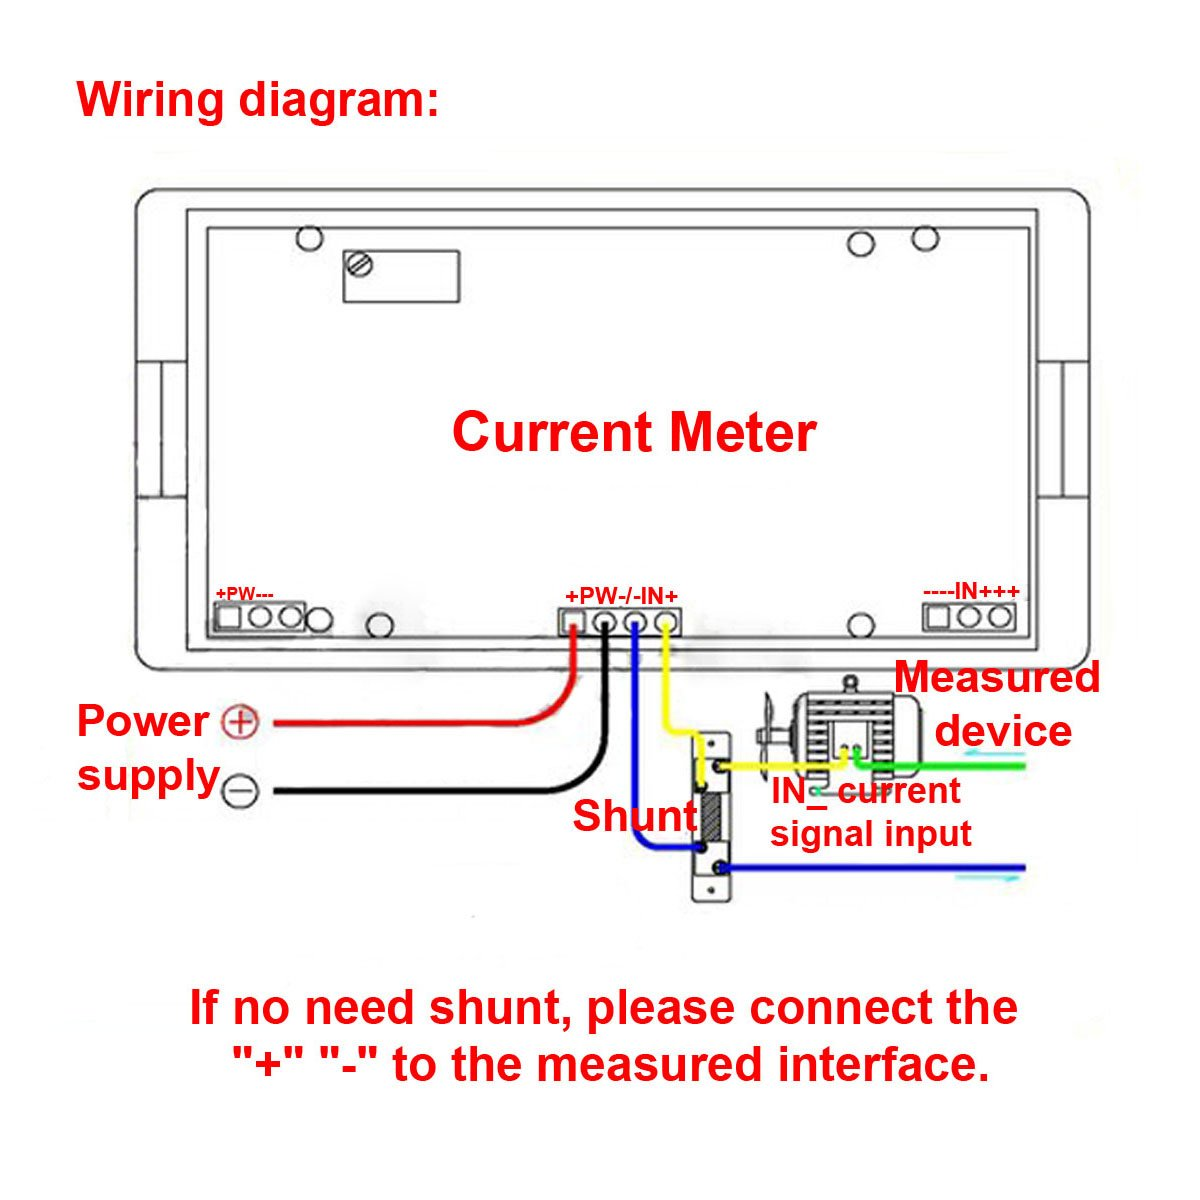 71y4ihHRXiL._SL1200_ drok wiring diagram drok power supply \u2022 wiring diagrams j squared co ac amp meter wiring diagram at readyjetset.co